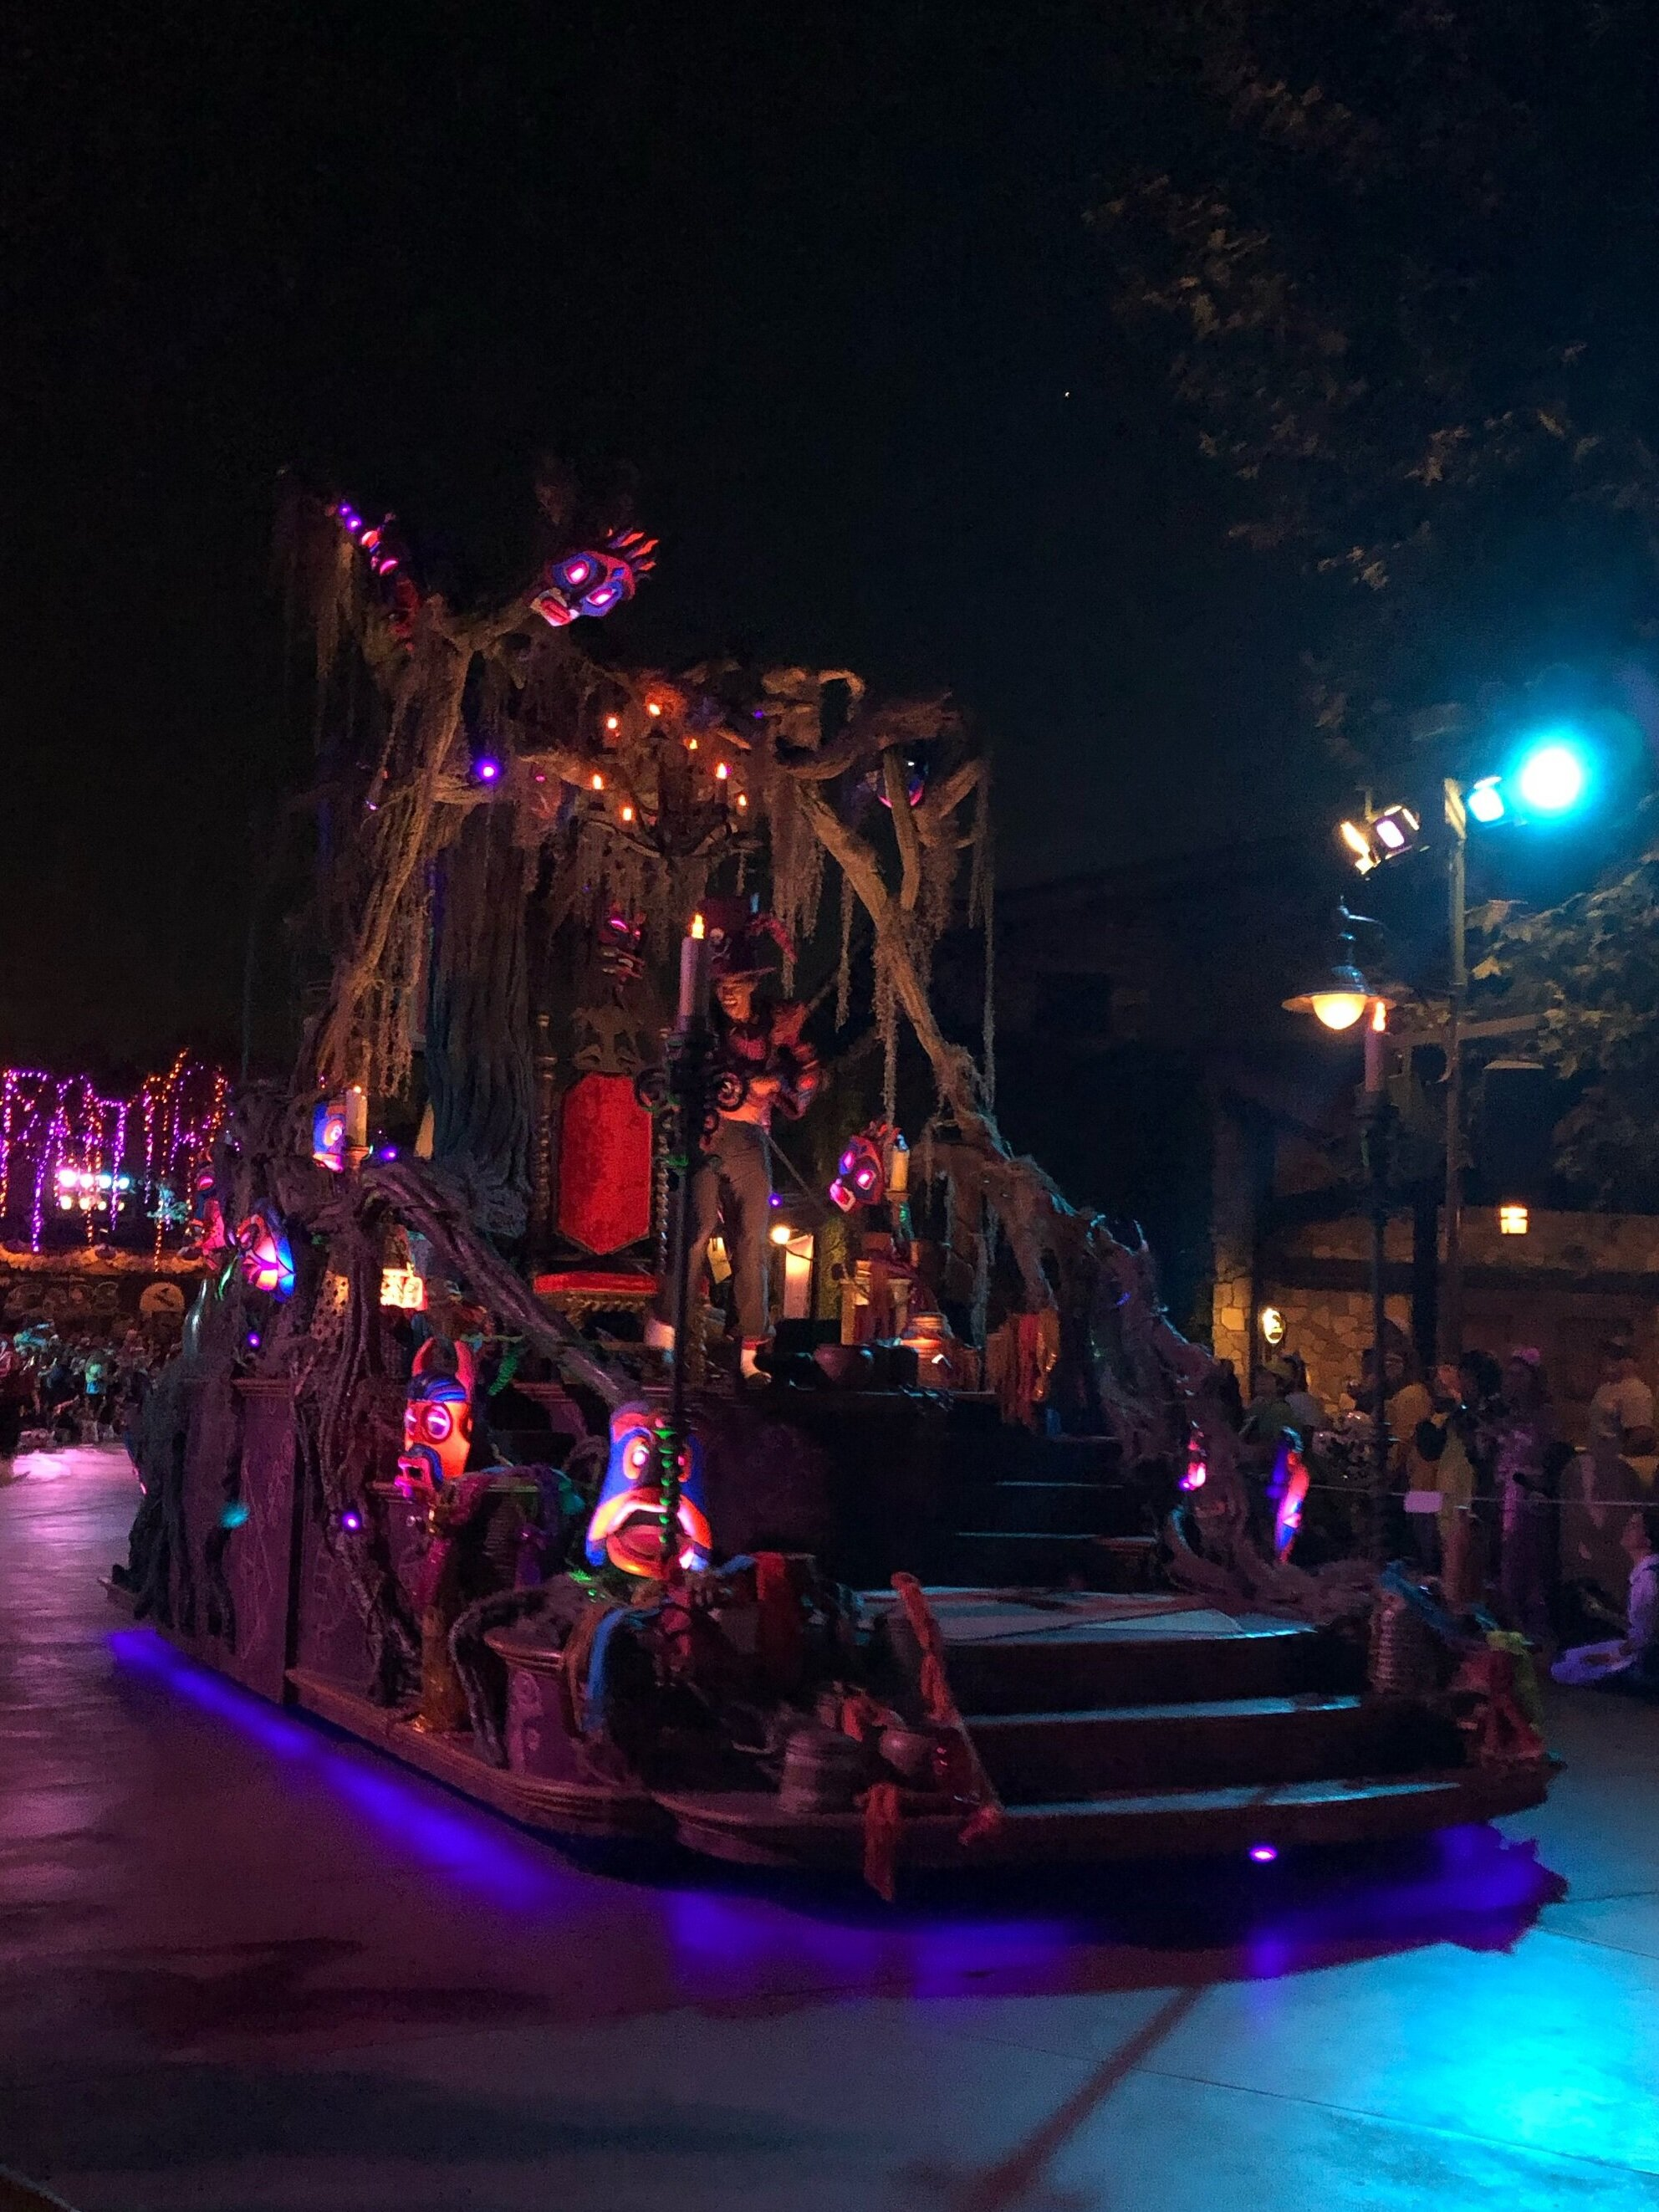 Tips For Taking Your Kids To Oogie Boogie's Bash At Disney California Adventure.  #Disneyland #Mickey'sHalloweenParty #MickeysHalloweenParty2019 #OogieBoogieBash #OogieBoogieBashDisneyland #Disneyland #DisneyCaliforniaAdventure #DCA #DisneylandHalloween